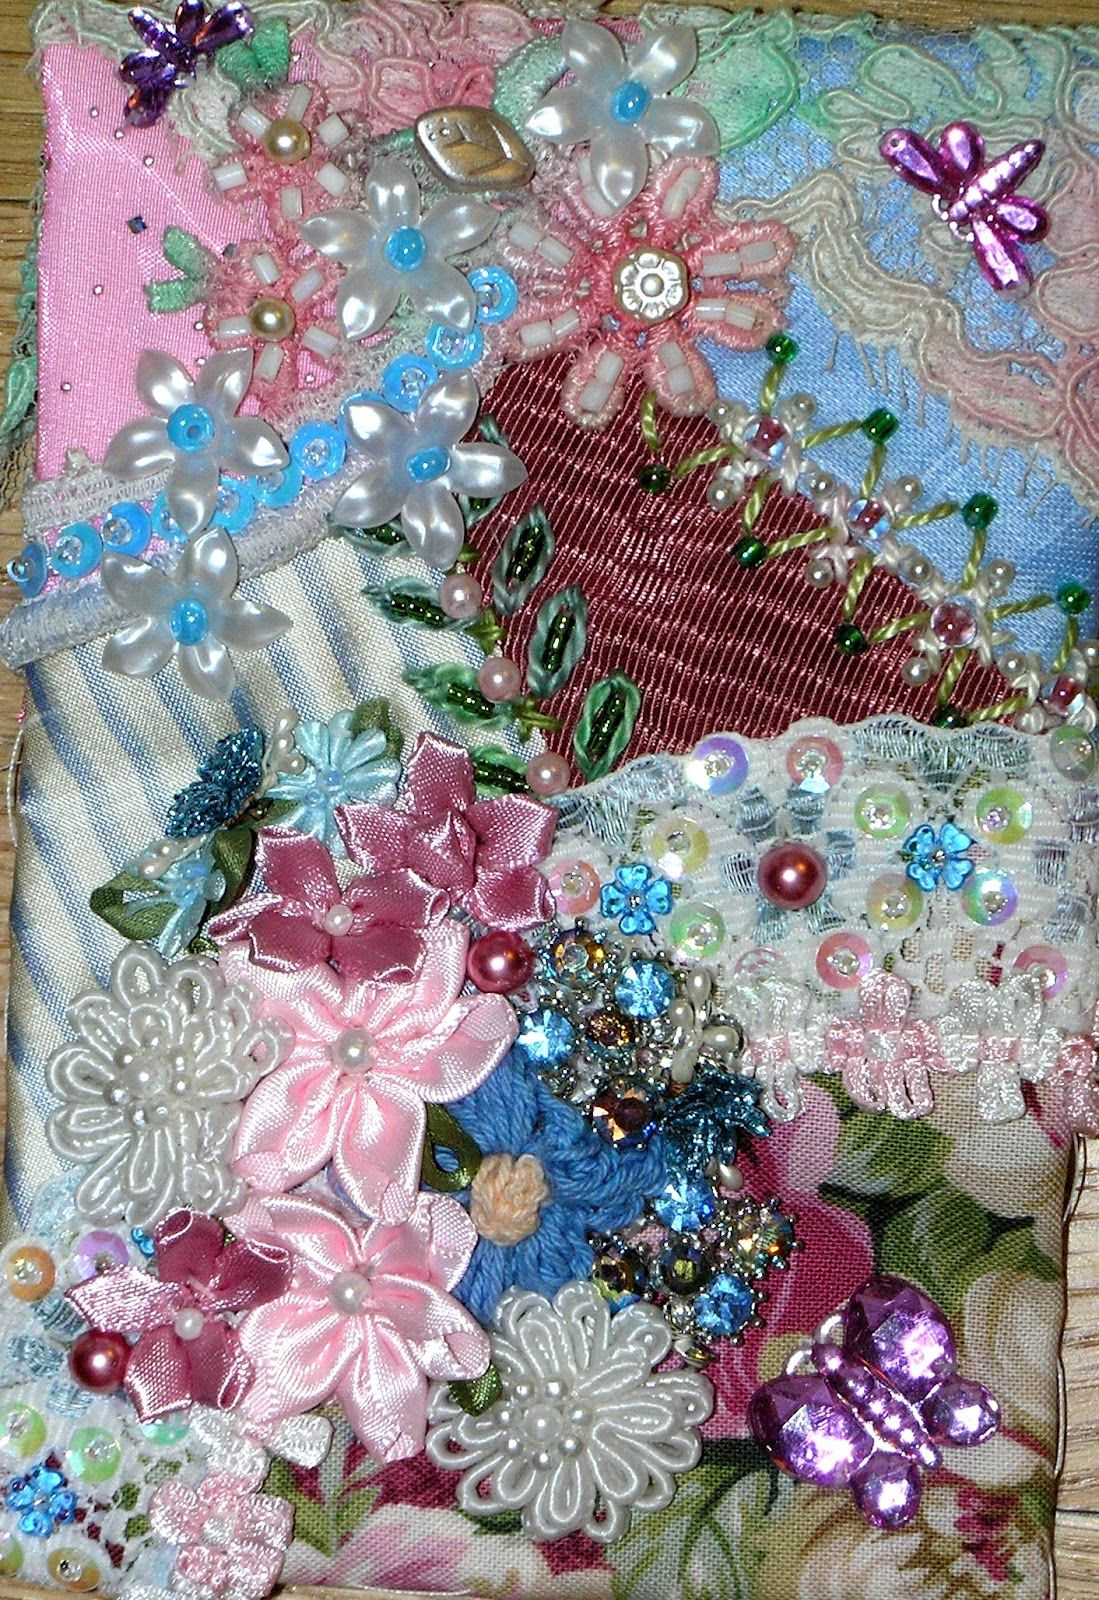 crazy quilt images | Crazy Quilting and Embroidery Blog by Pamela ... : crazy quilt blogs - Adamdwight.com